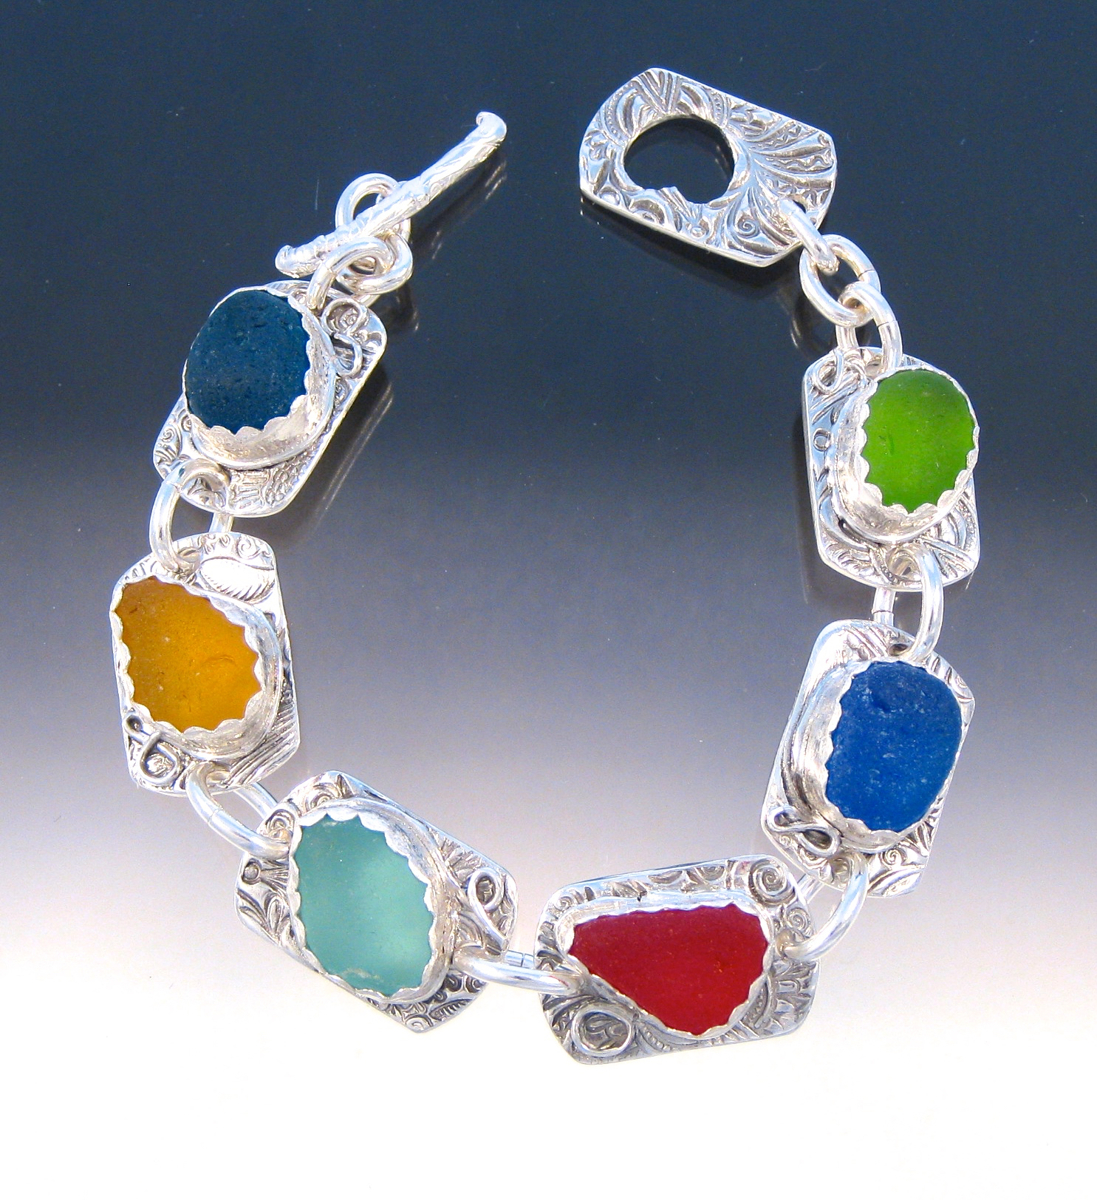 B188 - Stunning 6 color sea glass bracelet (large view)